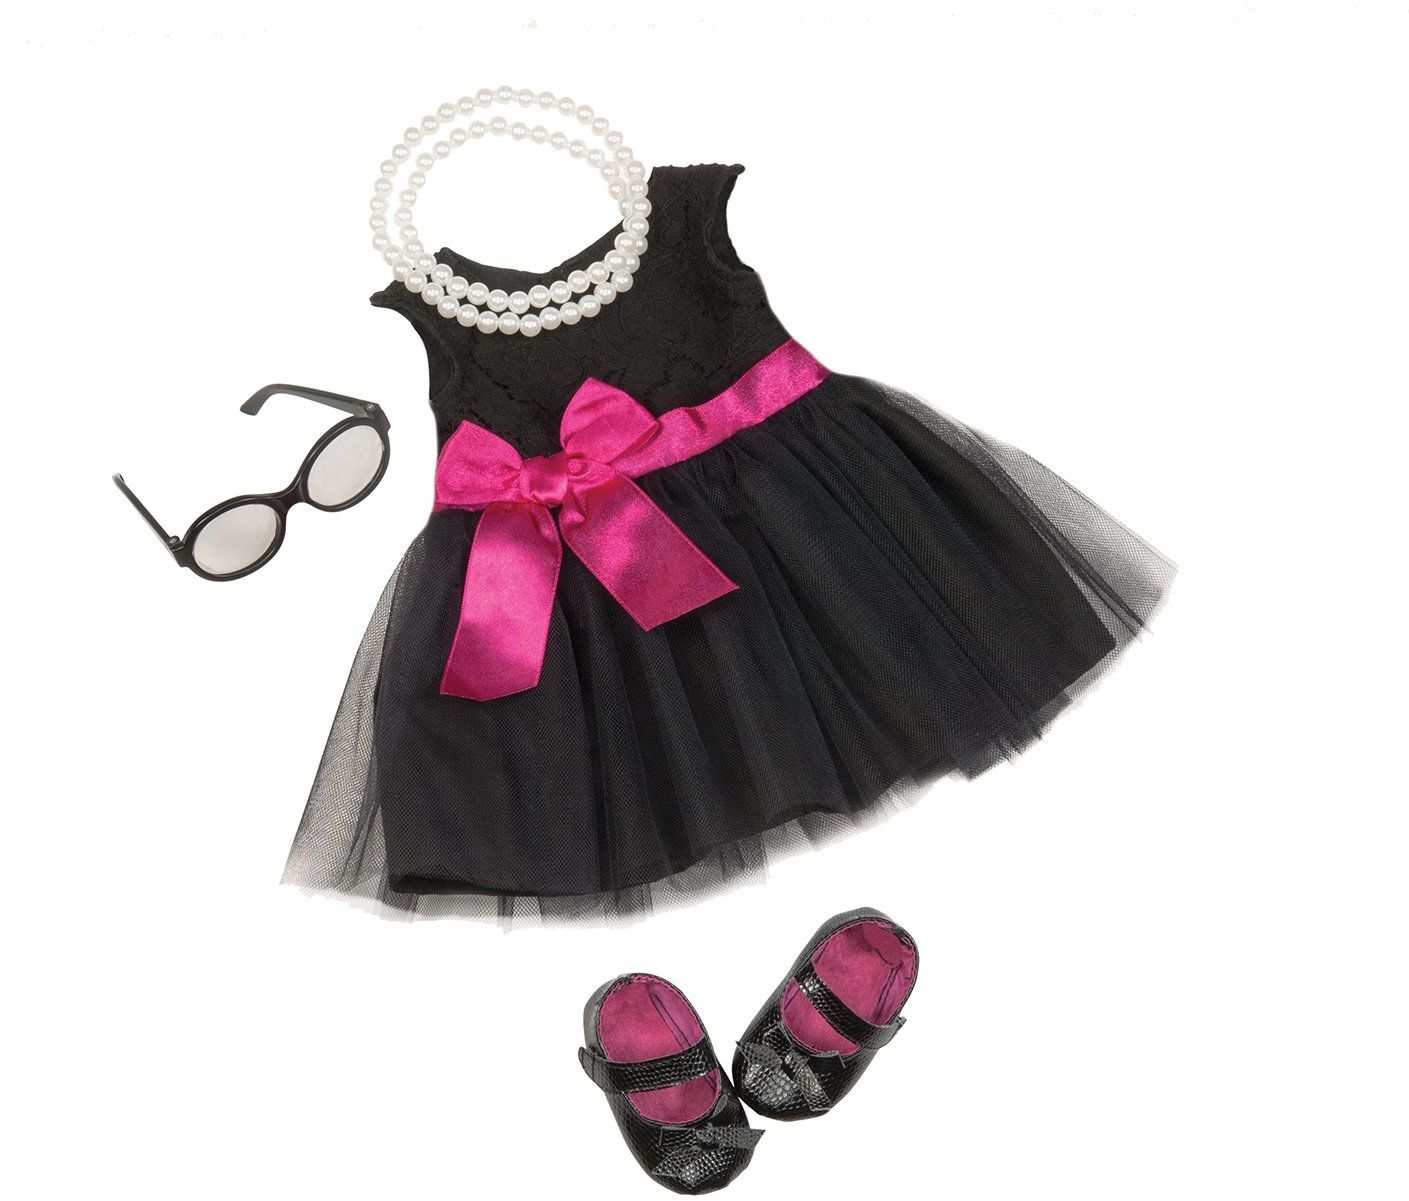 Our Generation 44582 Audrey Dress & Pearls Deluxe Outfit, czarny